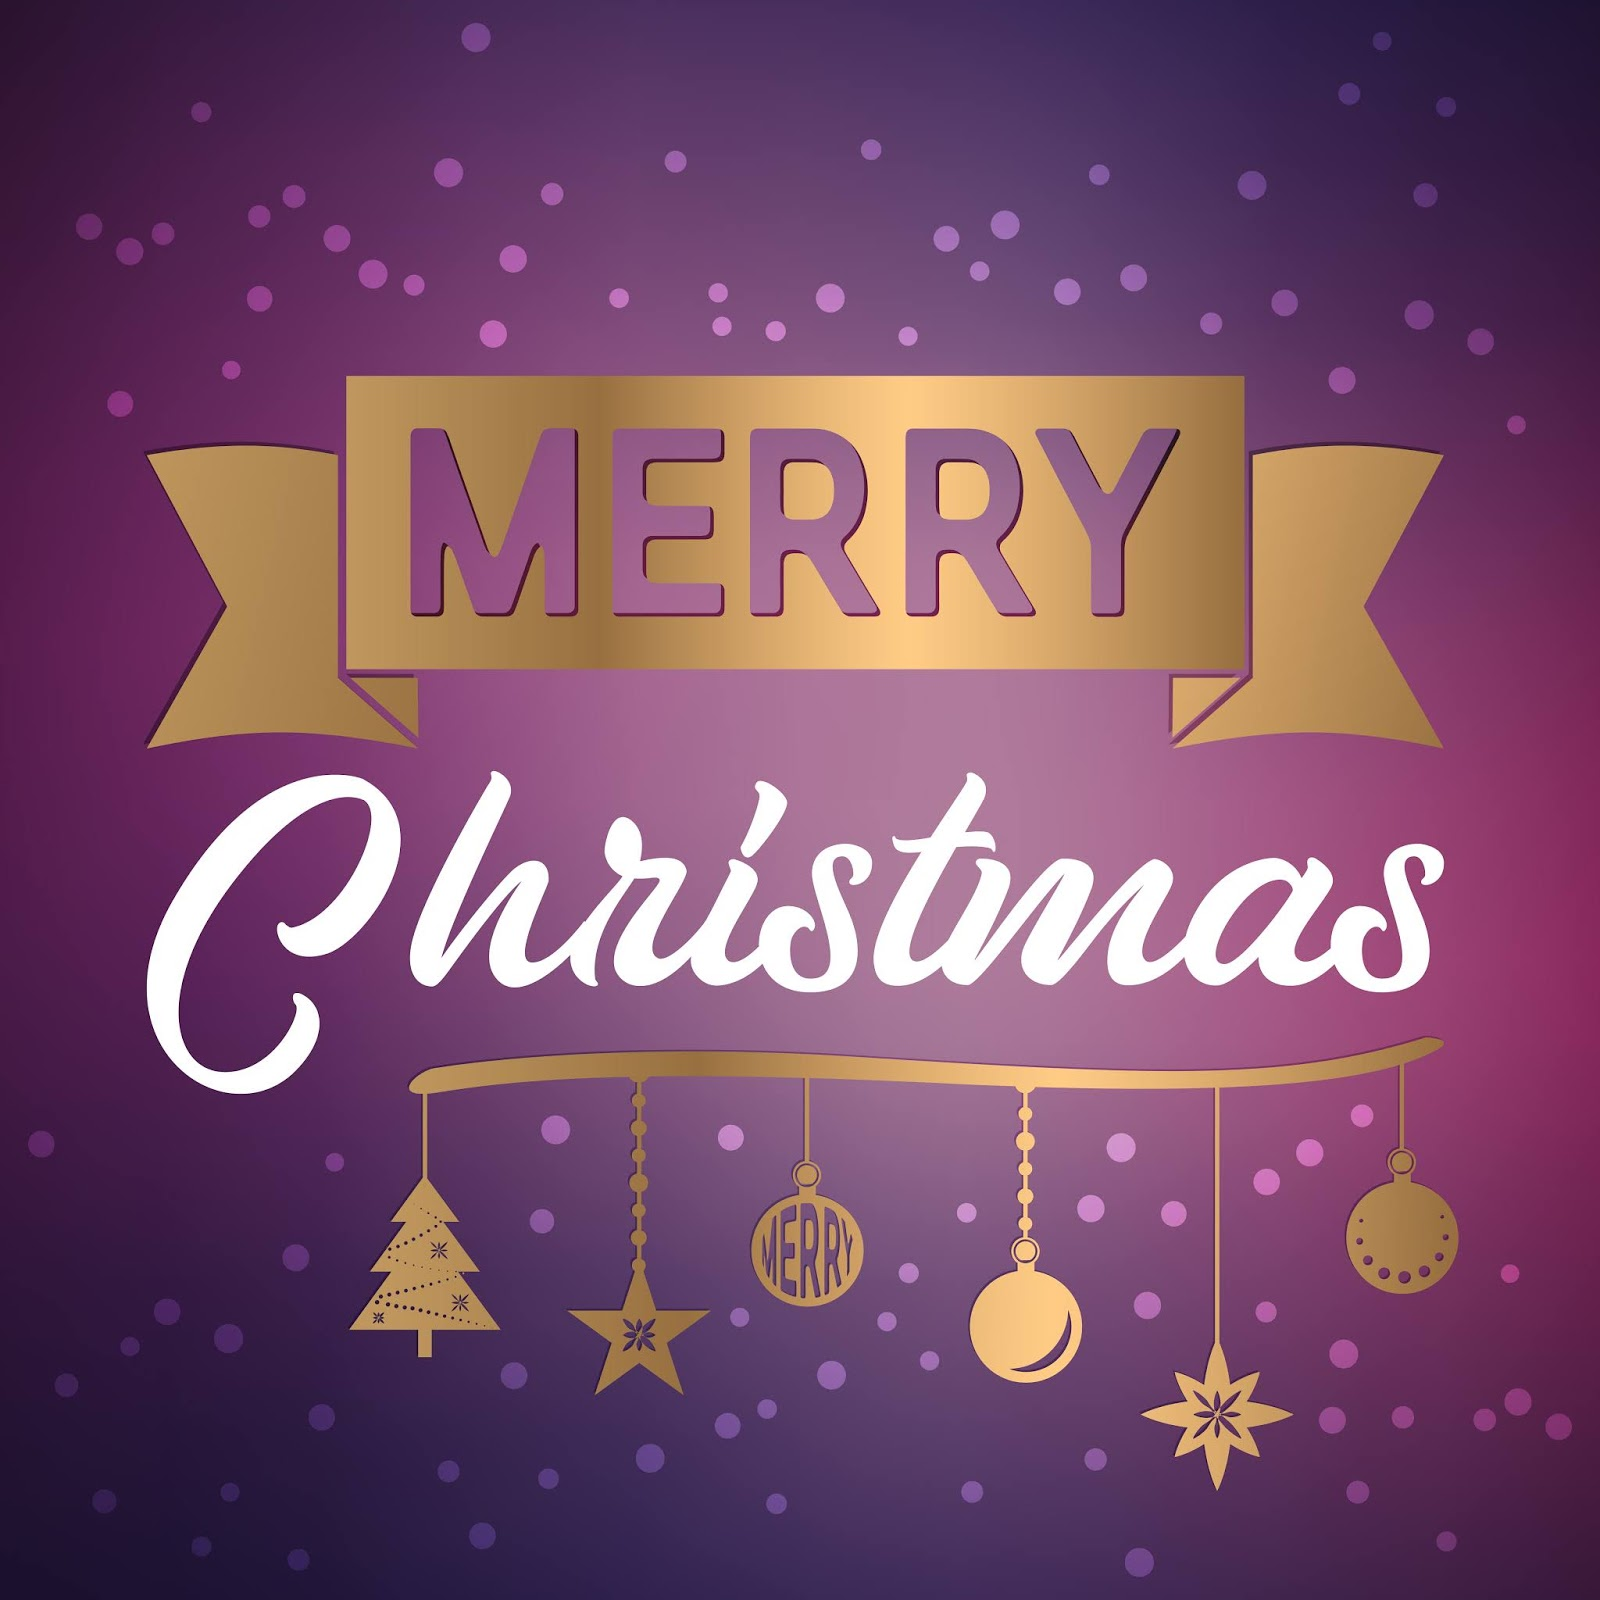 Christmas Retro Greeting Card Background Free Download Vector CDR, AI, EPS and PNG Formats